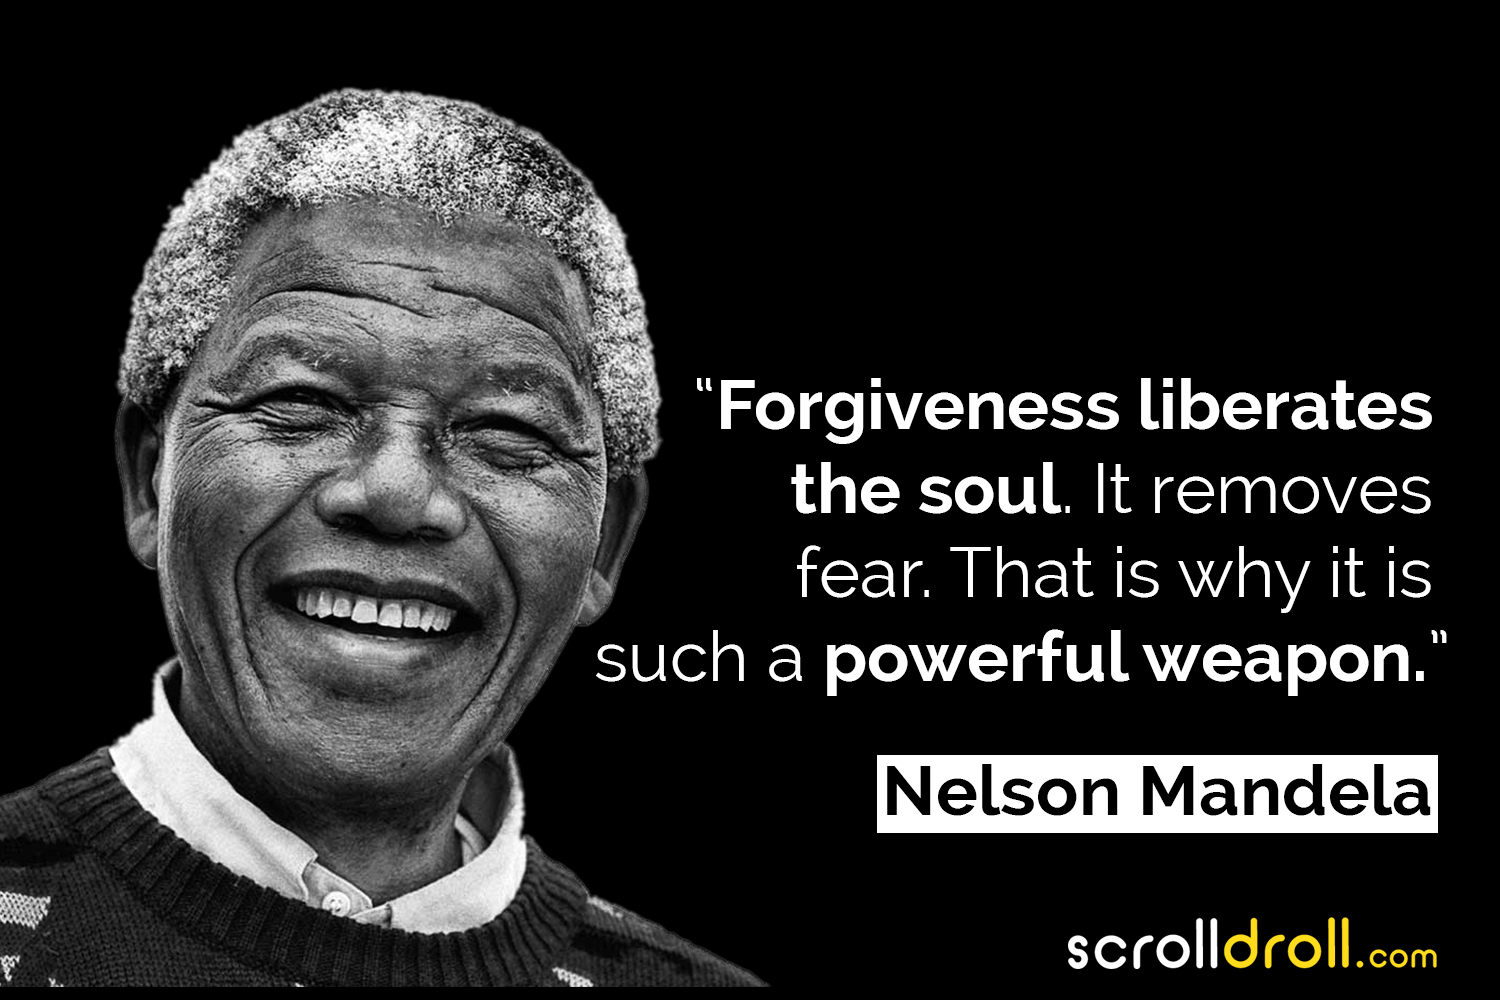 10 Nelson Mandela Quotes On Peace, Leadership, Change & More